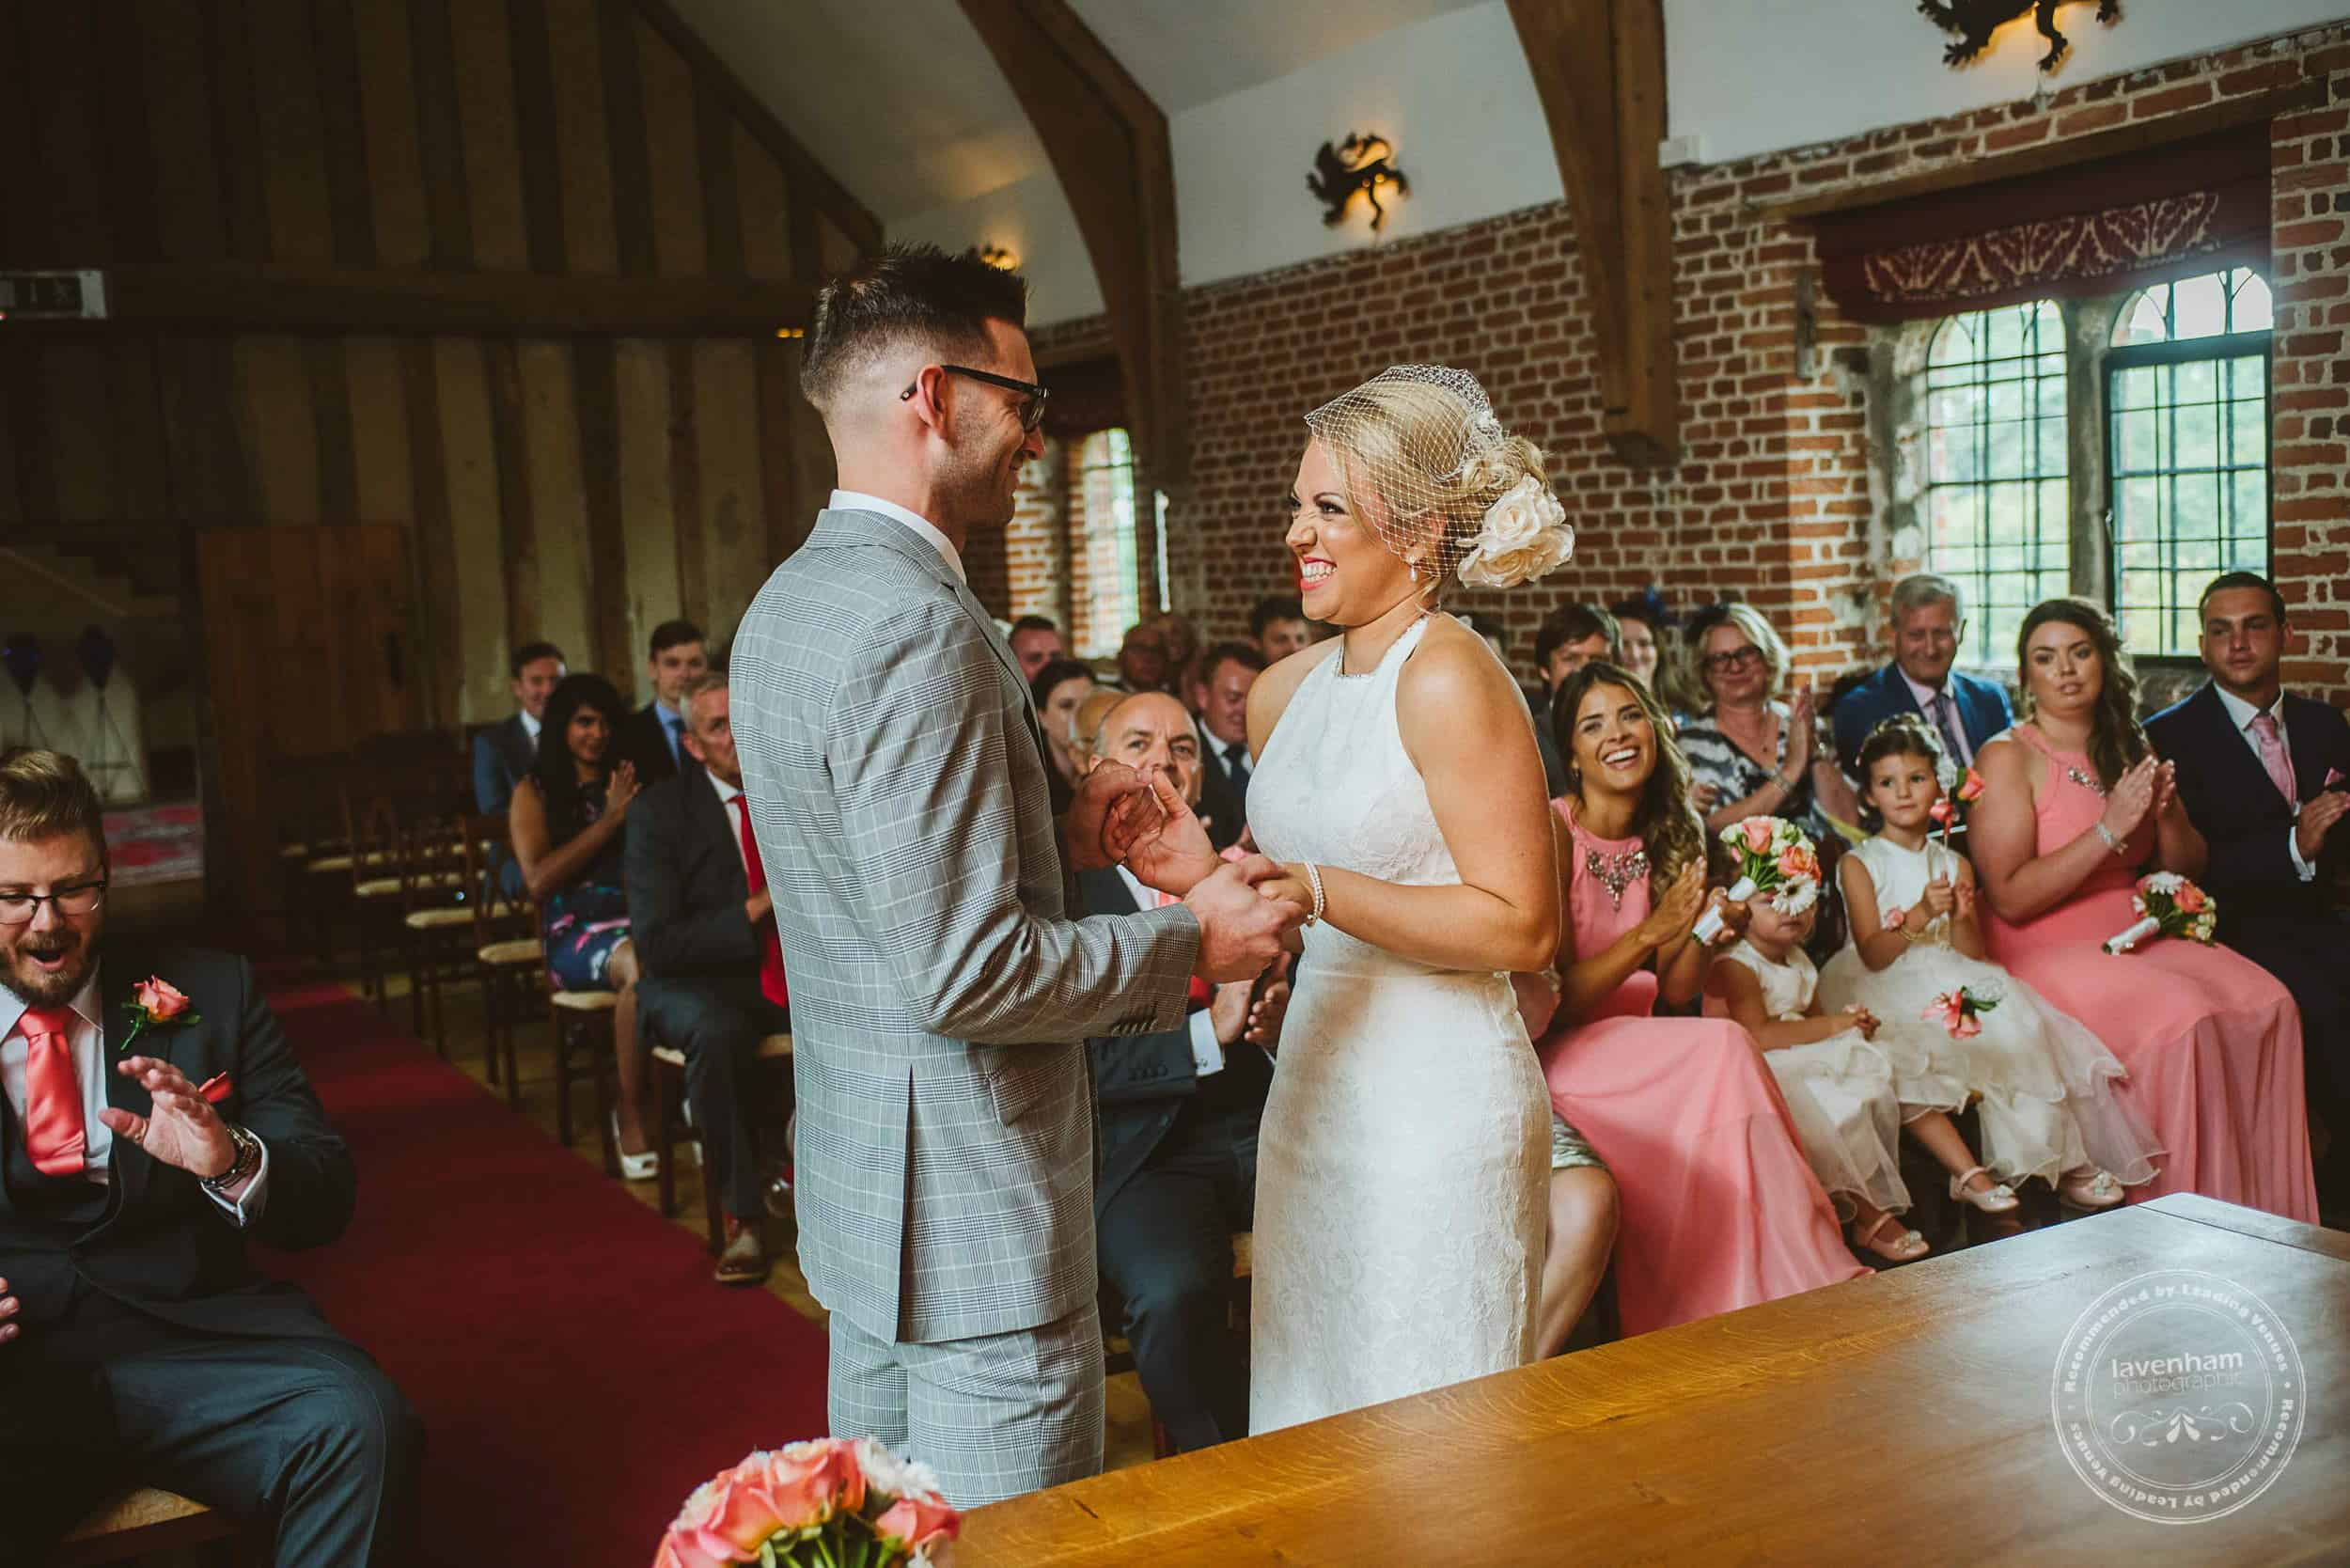 140717 Layer Marney Wedding Photography by Lavenham Photographic 043